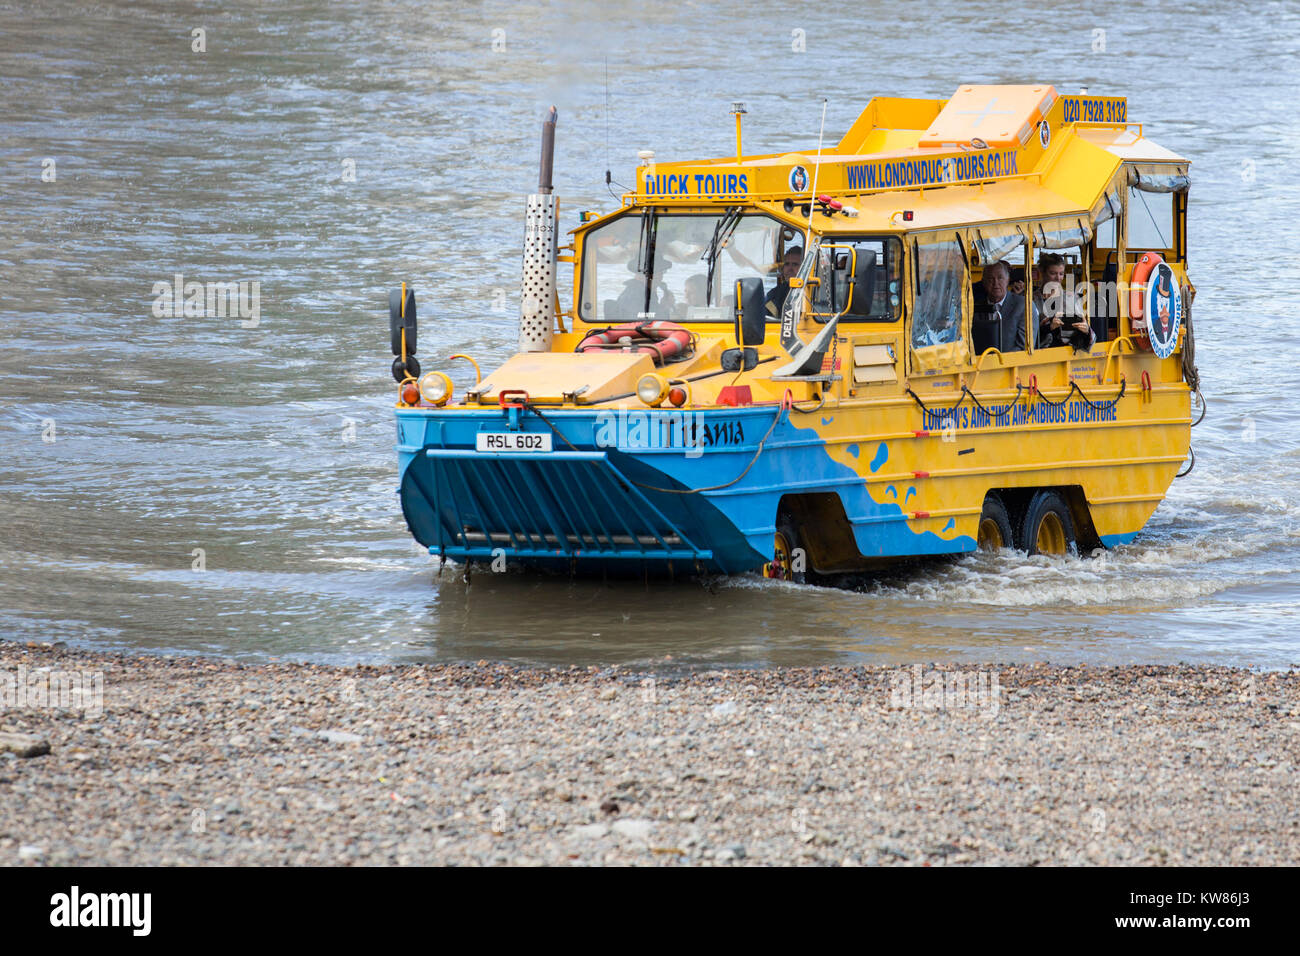 London Duck Tours amphibious vehicle emerging from the River Thames, London, England, United Kingdom - Stock Image